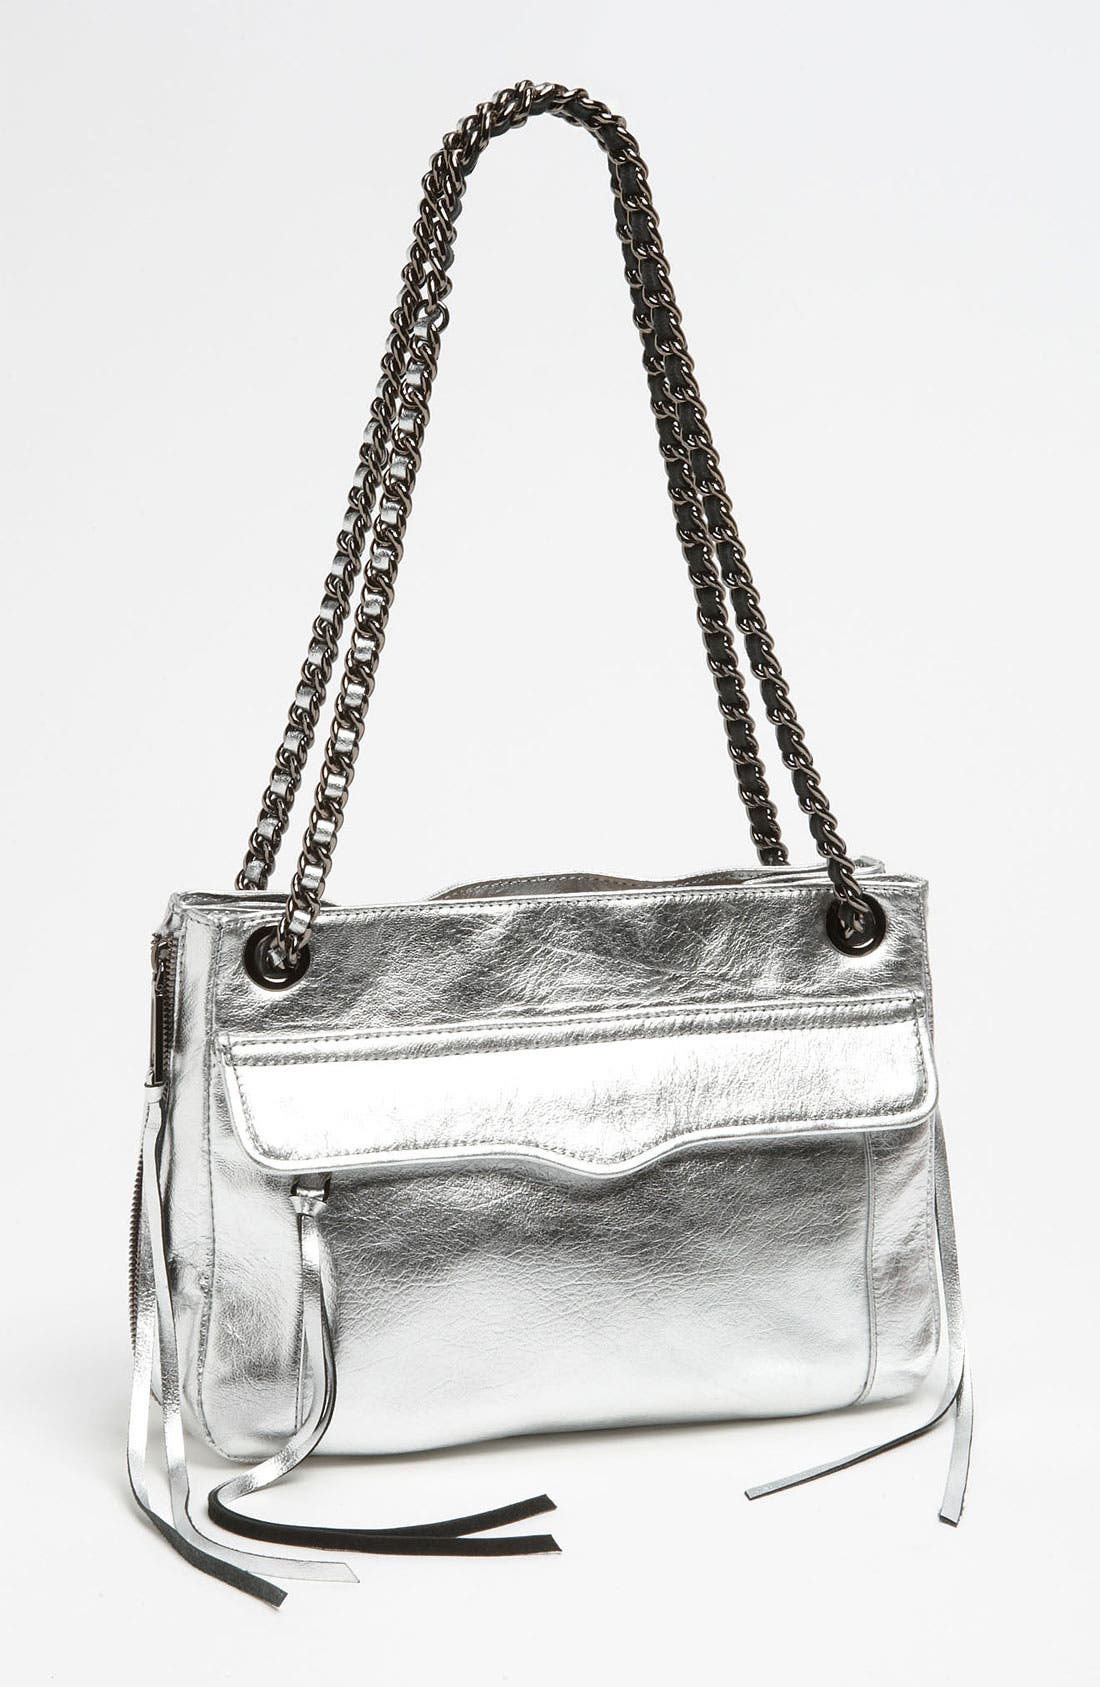 Alternate Image 1 Selected - Rebecca Minkoff 'Swing' Metallic Leather Shoulder Bag